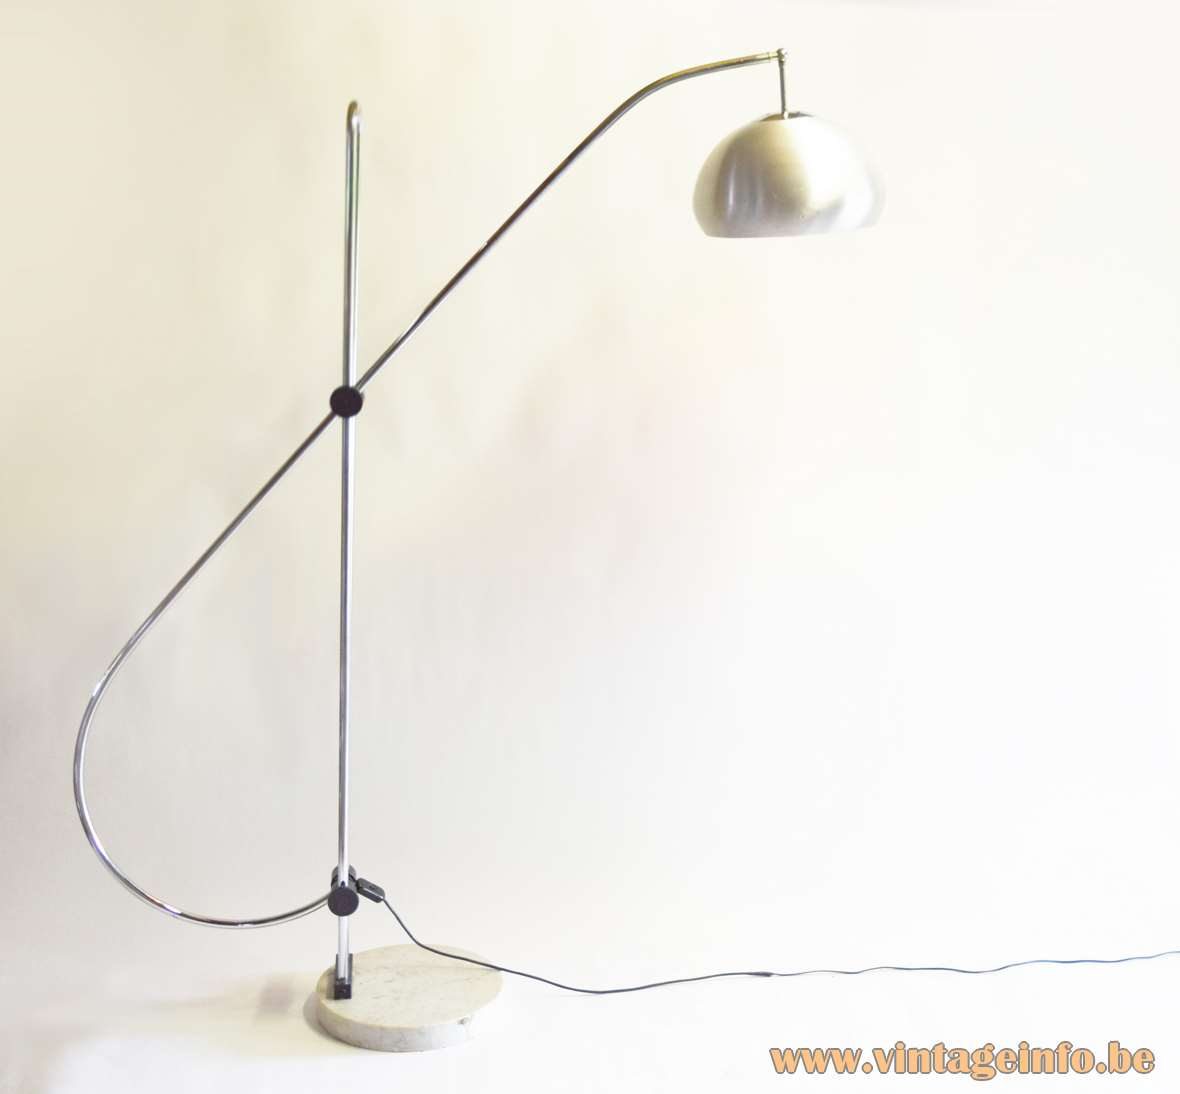 1960s Articulating Arc Floor Lamp Vintage Info All About Vintage Lighting